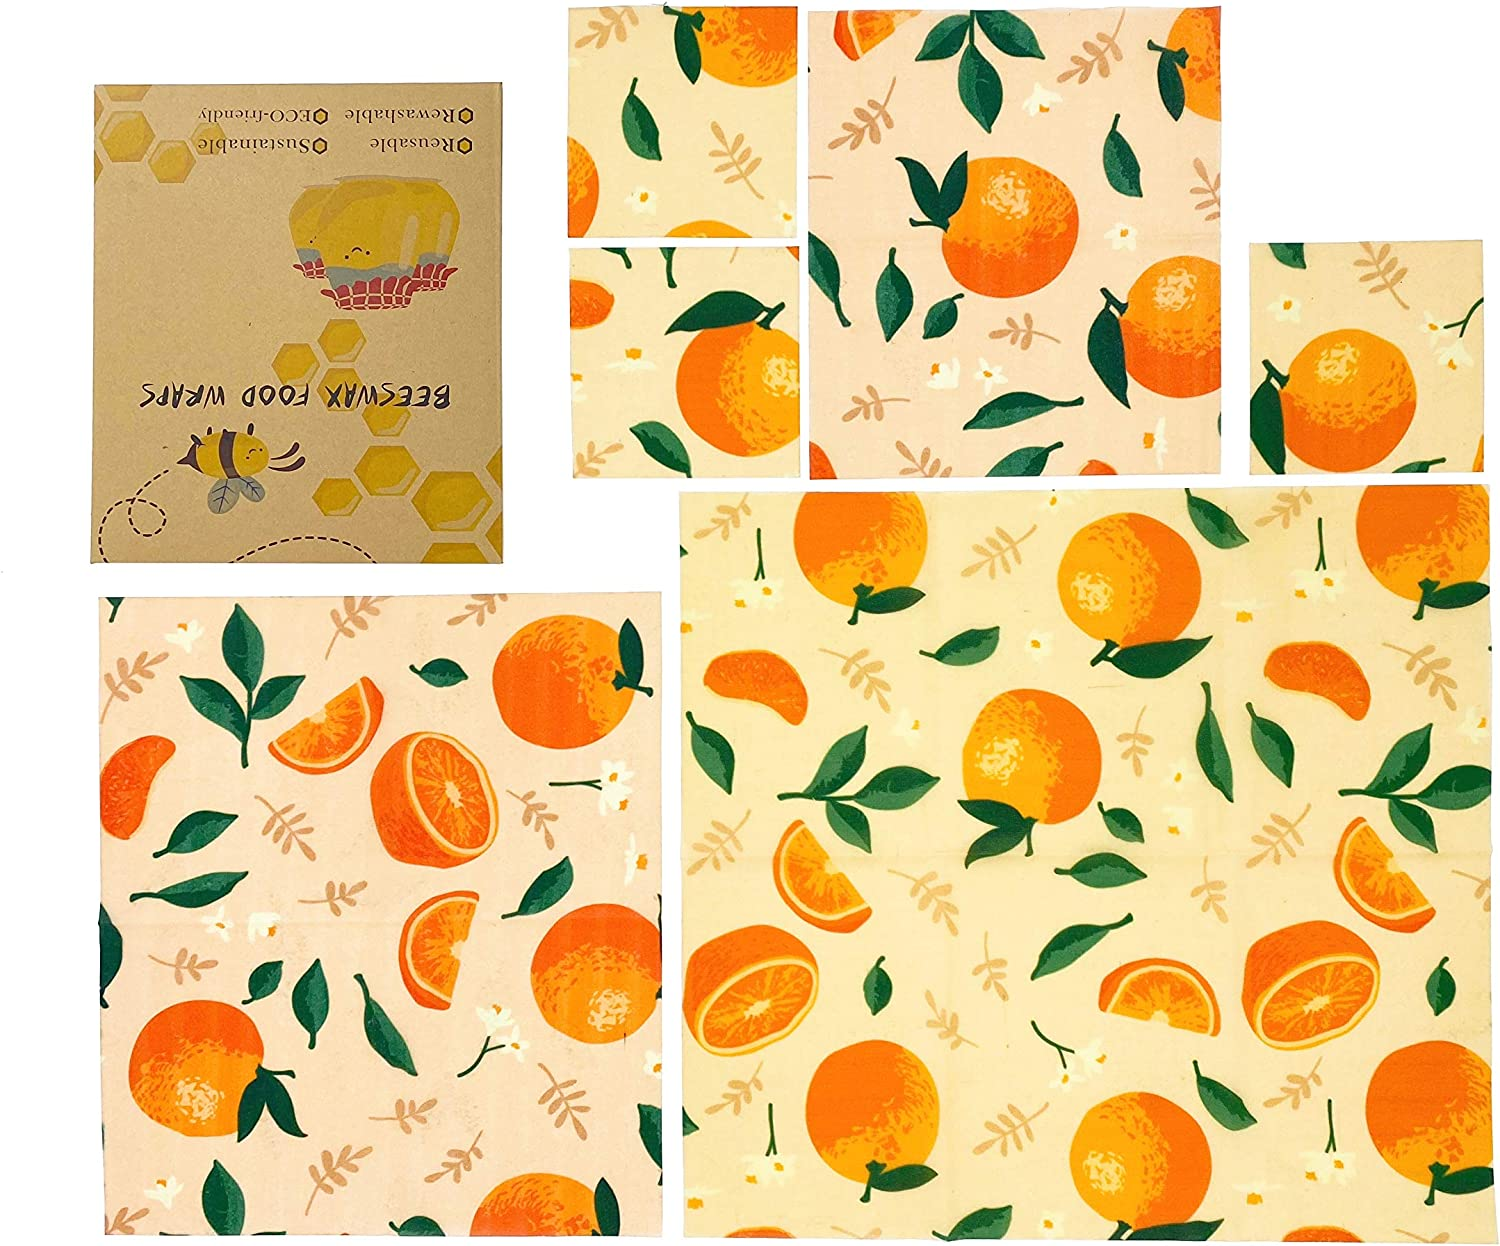 Beeswax Reusable Food Wraps,Beeswax Wrap set of 6,Zero waste,Eco Friendly Products,Sustainable Products,Reusable bags,Lock the Freshness of Food,Plastic Free for Food and Drink